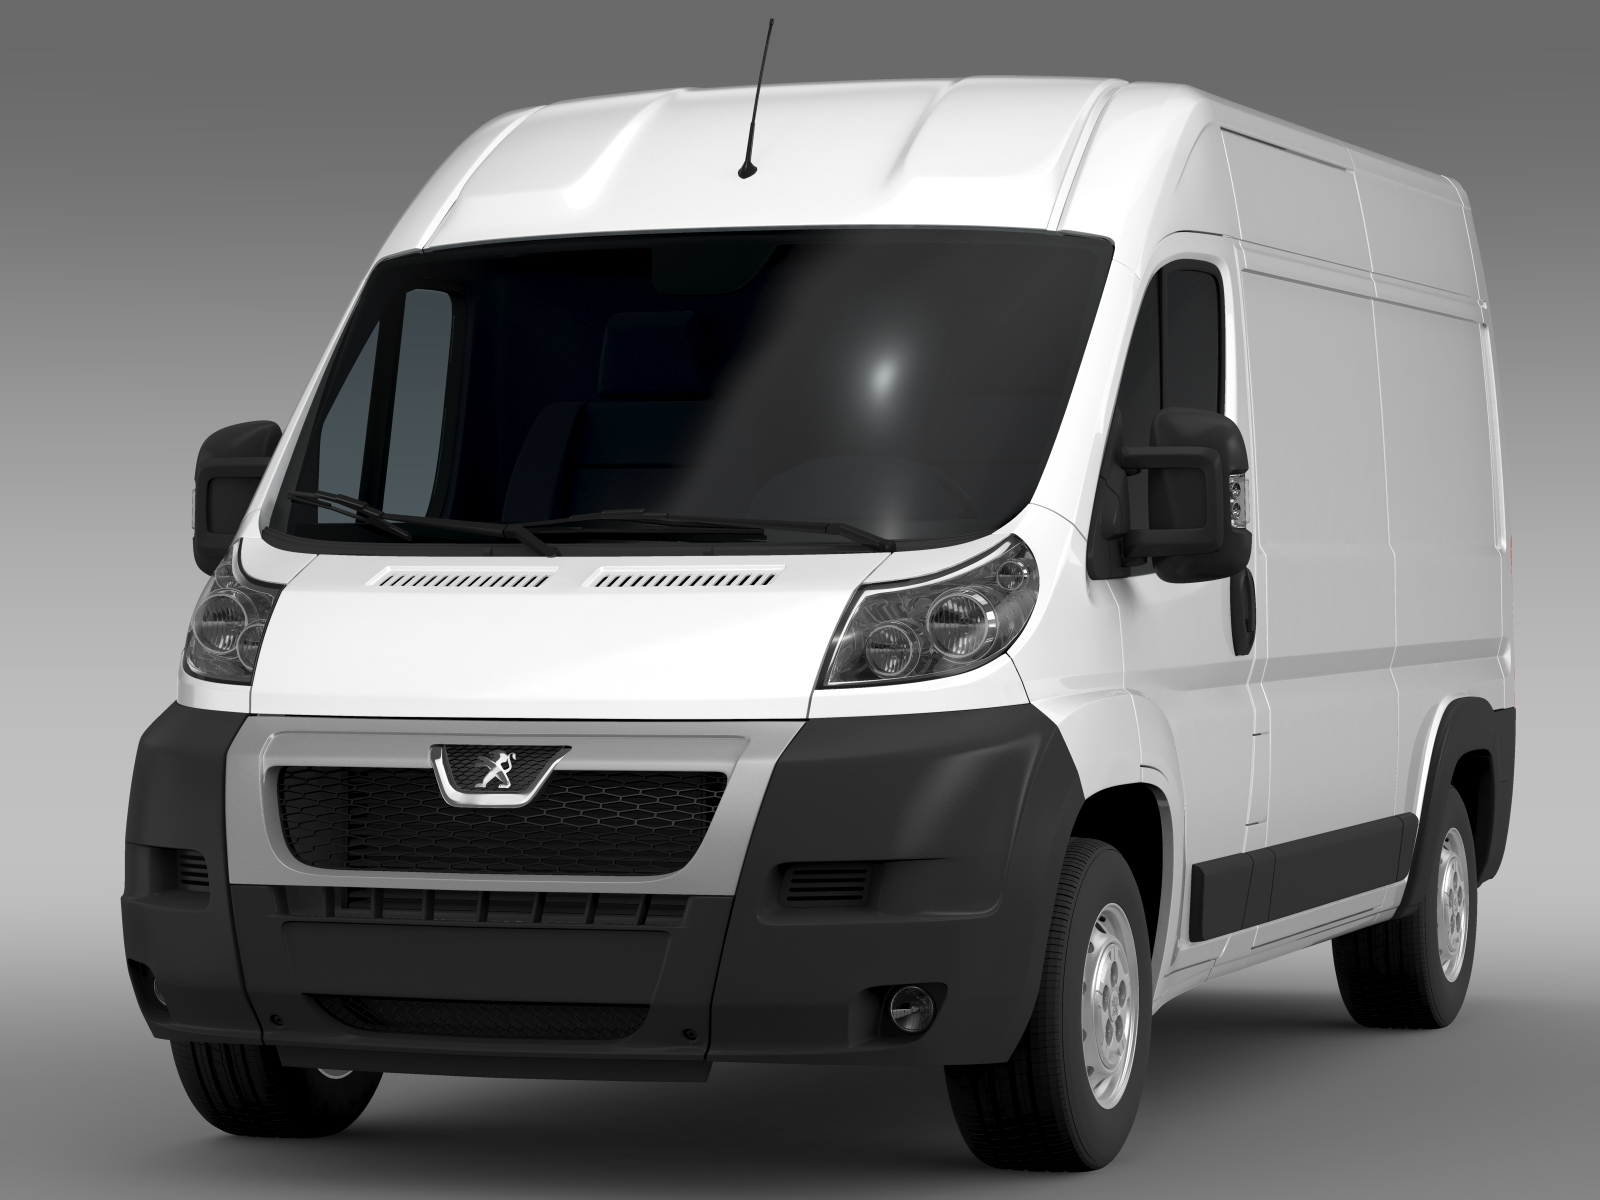 peugeot boxer van l2h2 2006 2014 3d model. Black Bedroom Furniture Sets. Home Design Ideas